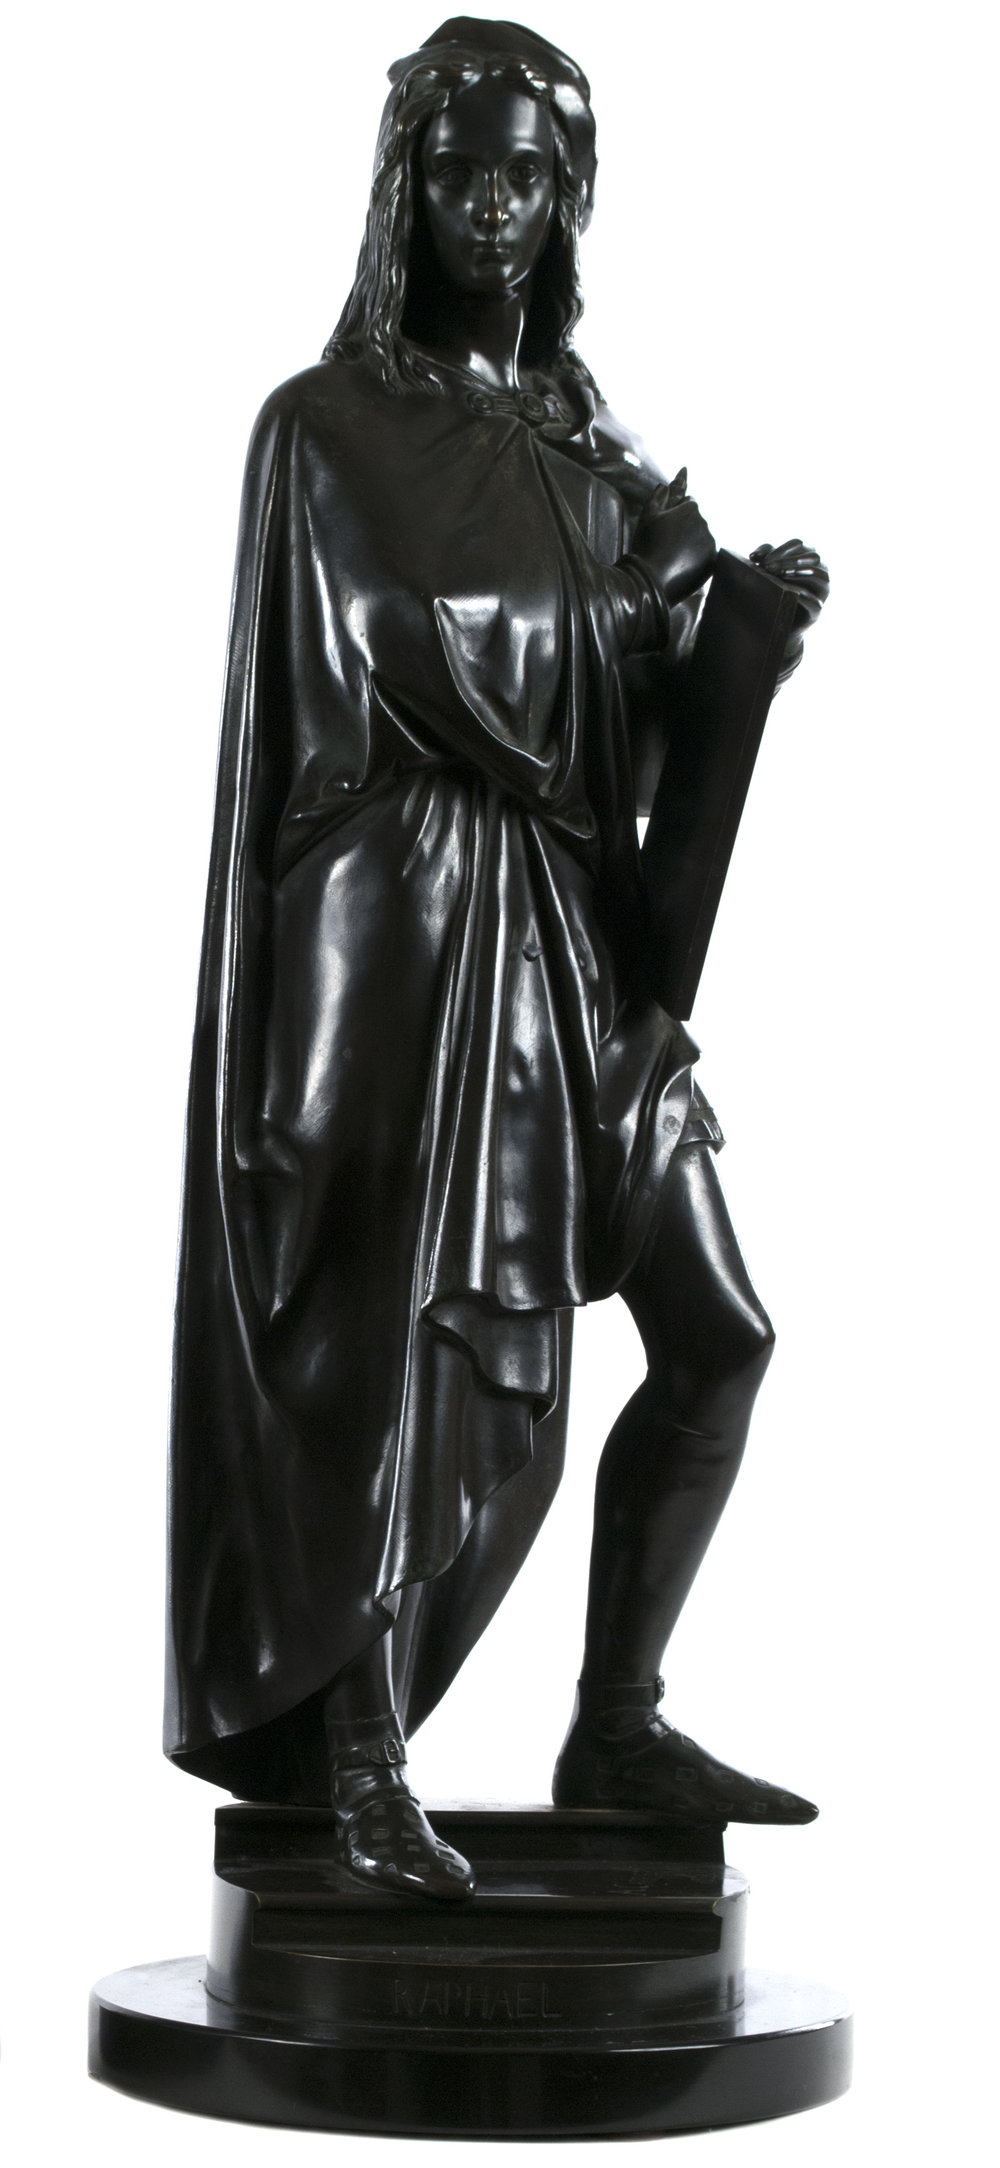 Albert-Ernest Carrier-Belleuse (French, 1824-1887) Raphael  /  bronze  /  21 1/2 × 8 × 8 (in)  /  Date of Creation: 1855